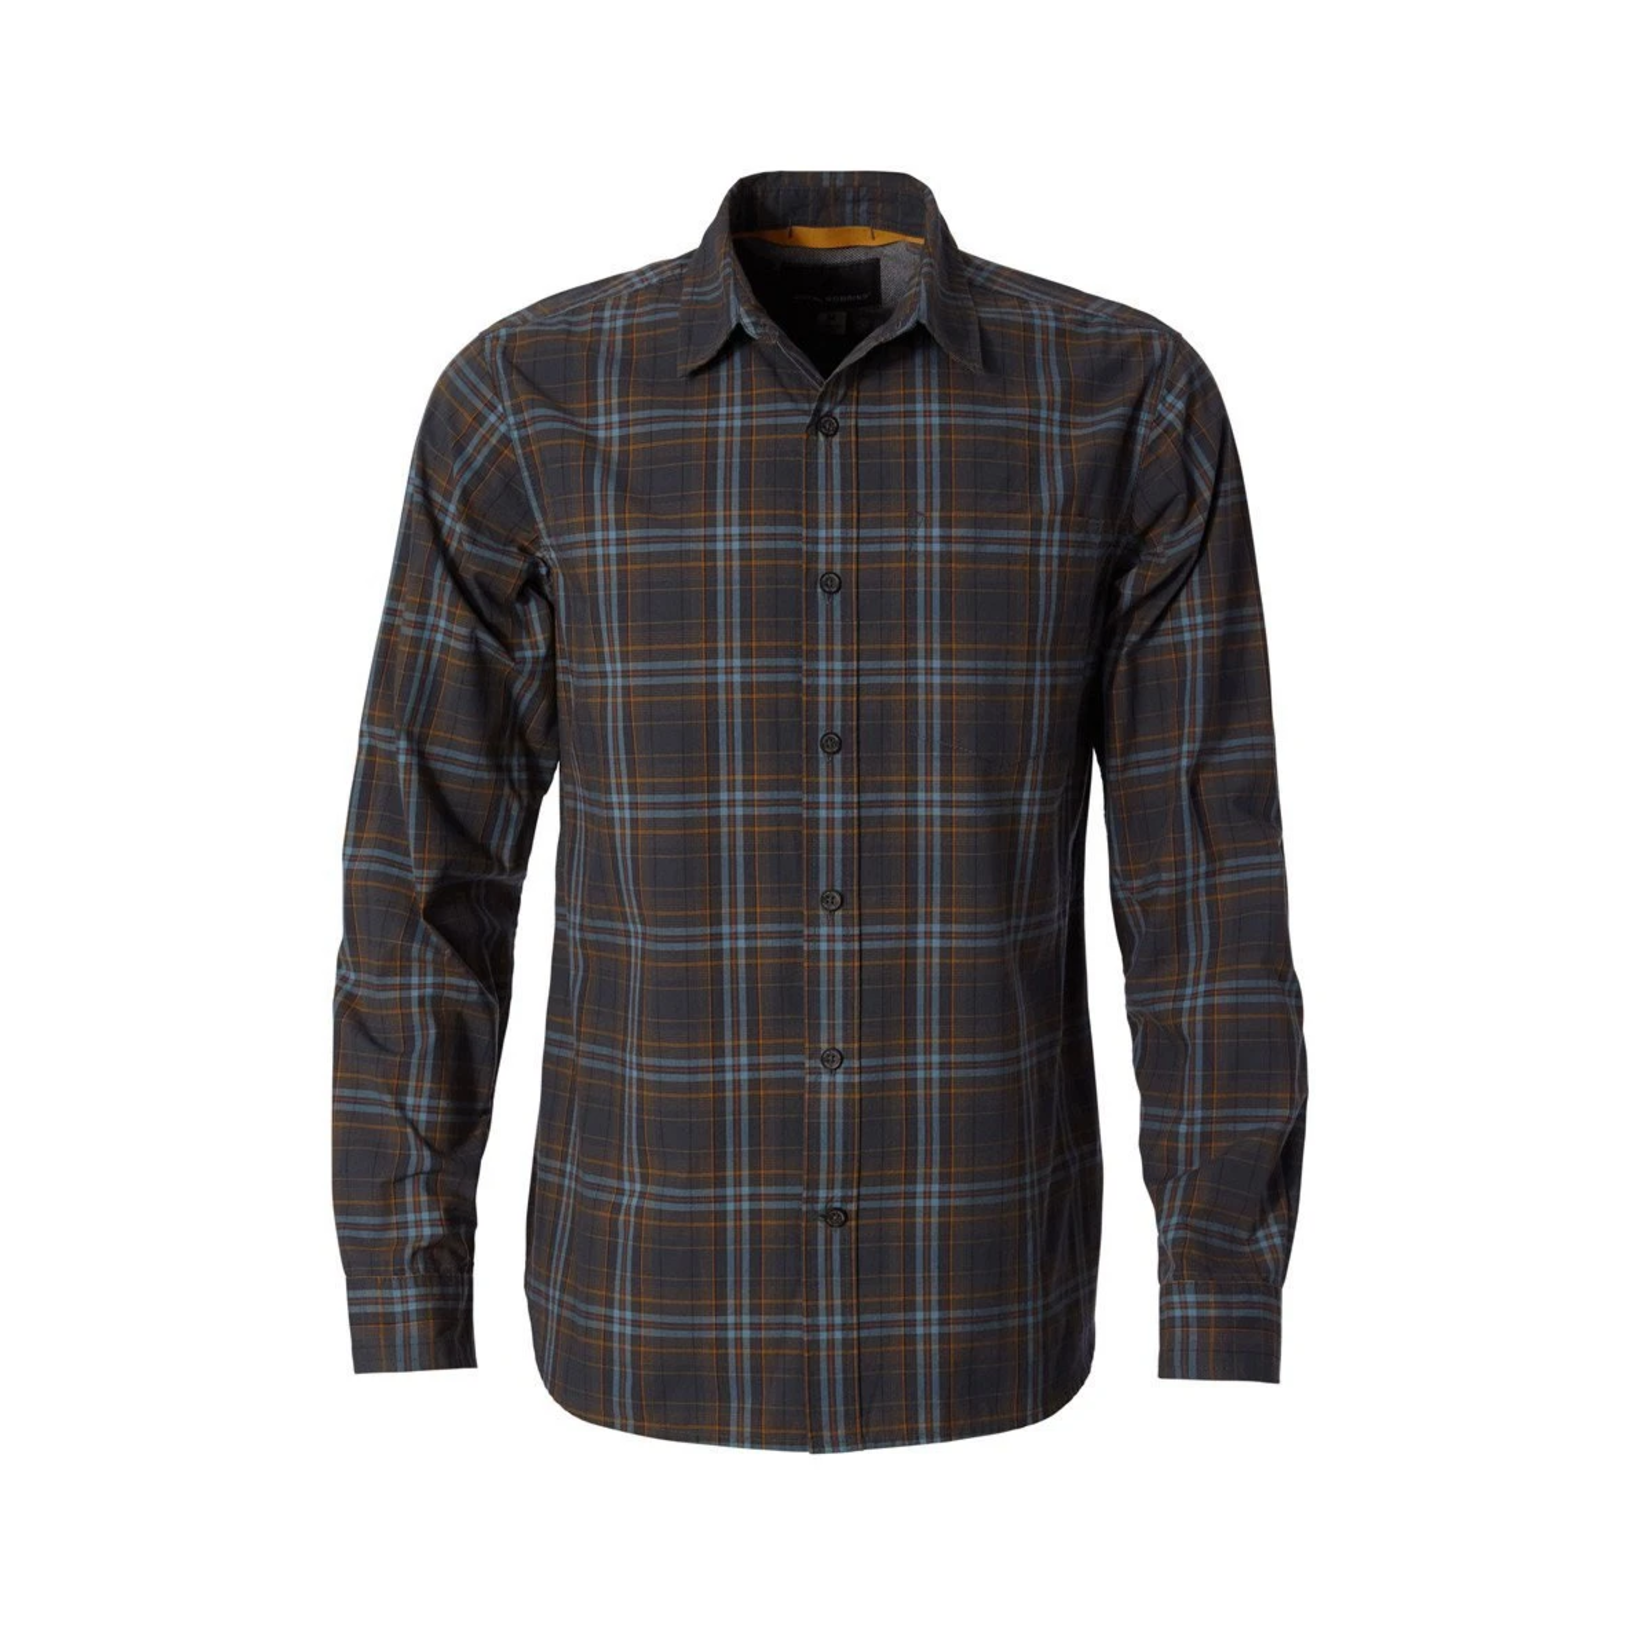 Royal Robbins Men's Trouvaille Plaid Long Sleeve